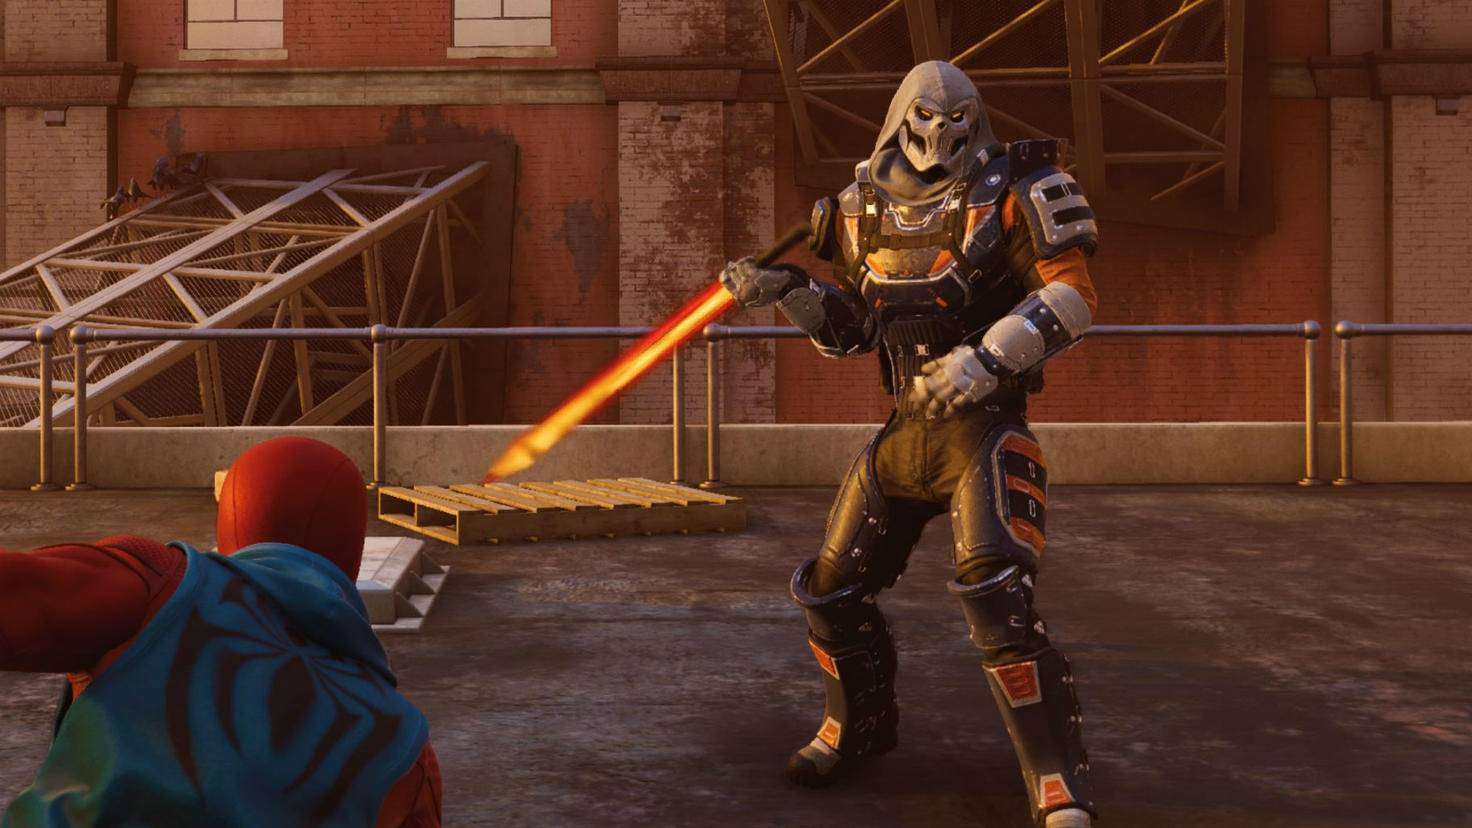 spider-man-ps4-taskmaster-screenshot